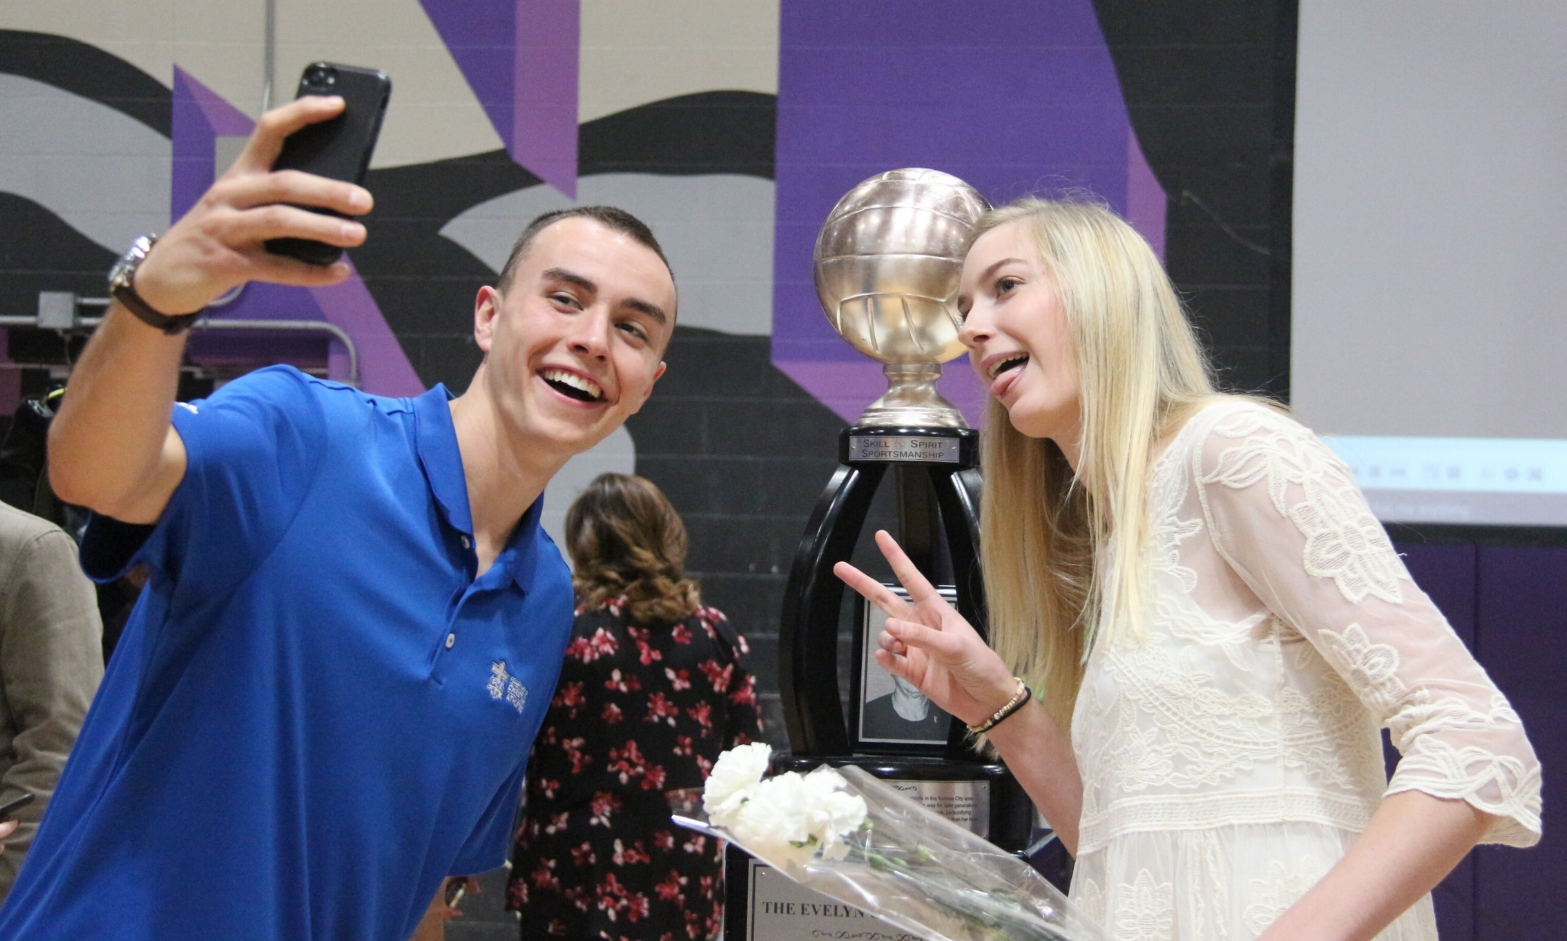 ROSS MARTIN/Citizen photo Park Hill South senior Annika Welty, right, poses for a selfie with older brother Hudson Welty after she won the Evelyn Gates Award, given to the top high school volleyball player in the Kansas City metro area, at a ceremony held Thursday, Nov. 16 at Park Hill South High School in Riverside, Mo.